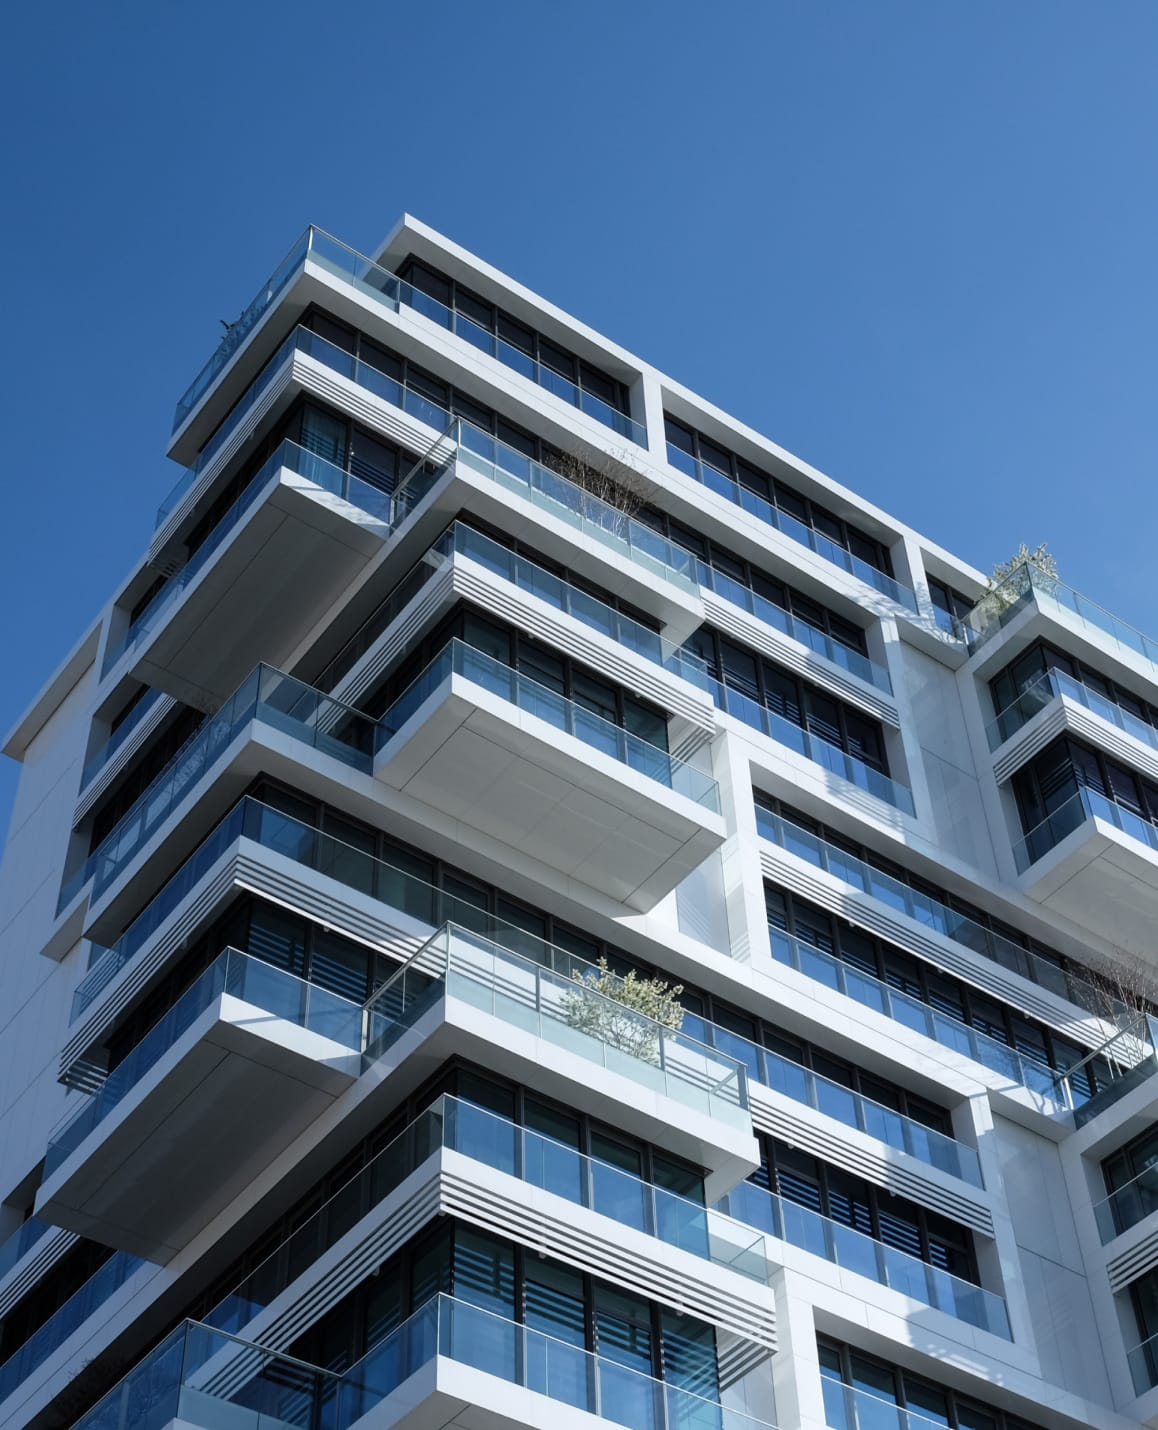 Looking up at a white, modern apartment building